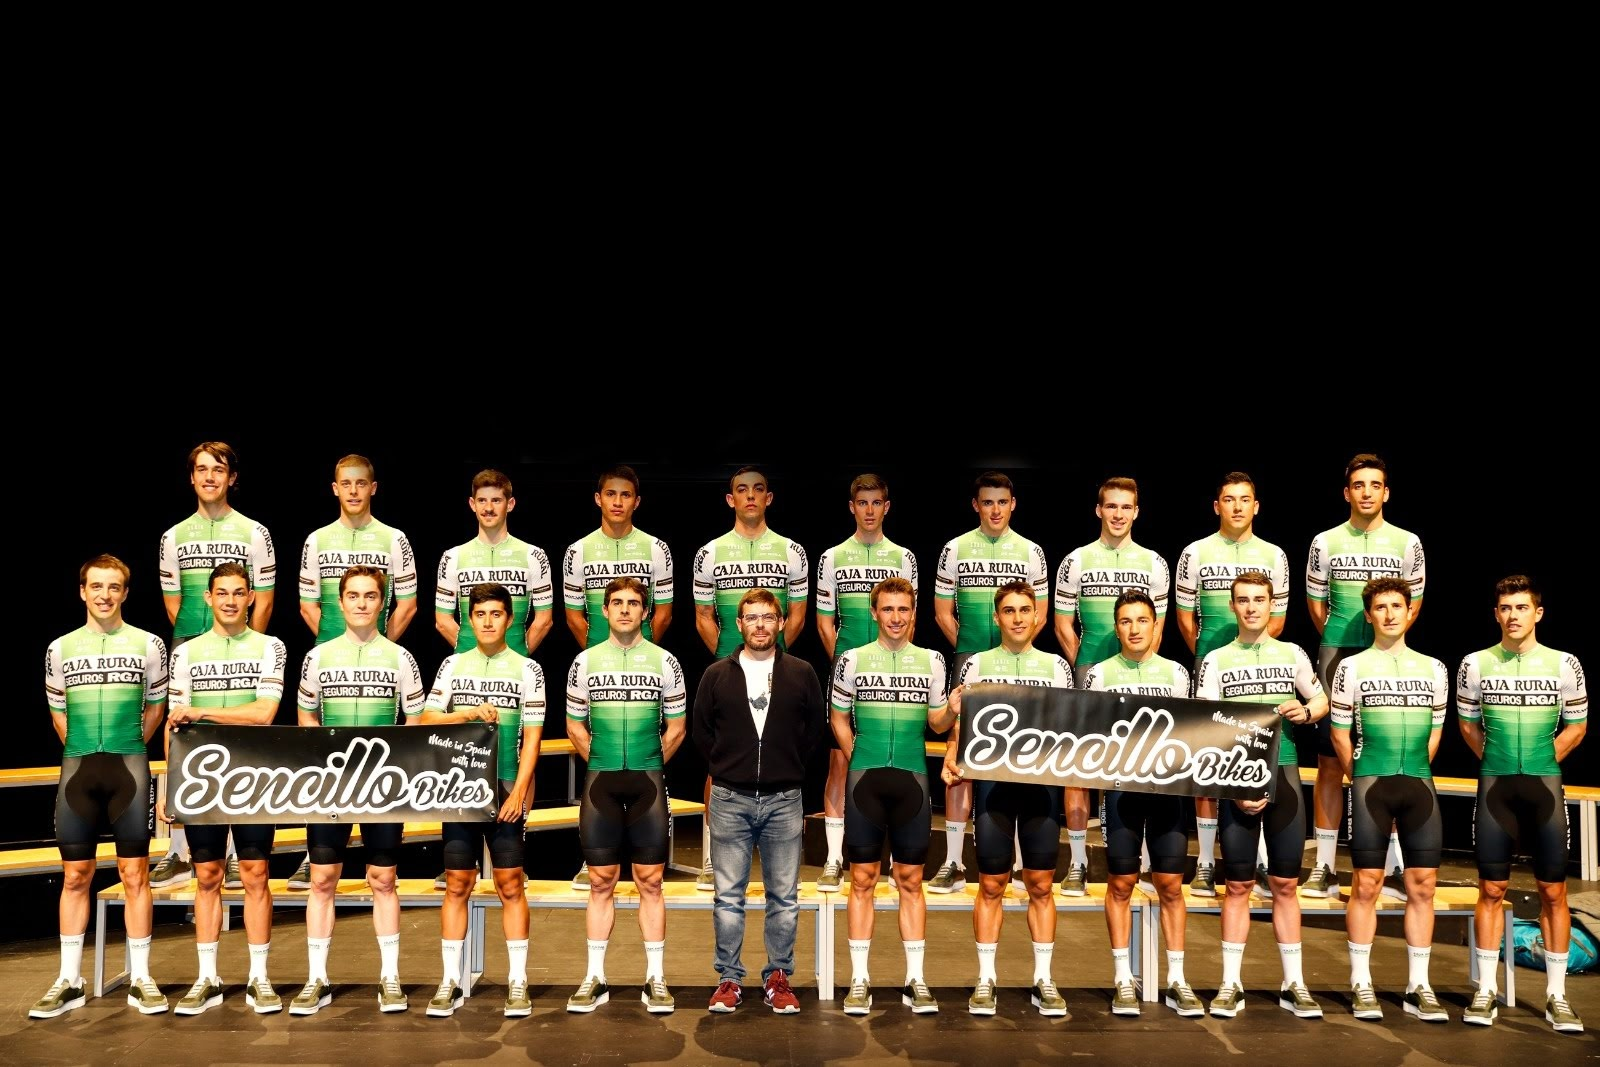 cAJArURAL rga CYCLING TEAM 2020